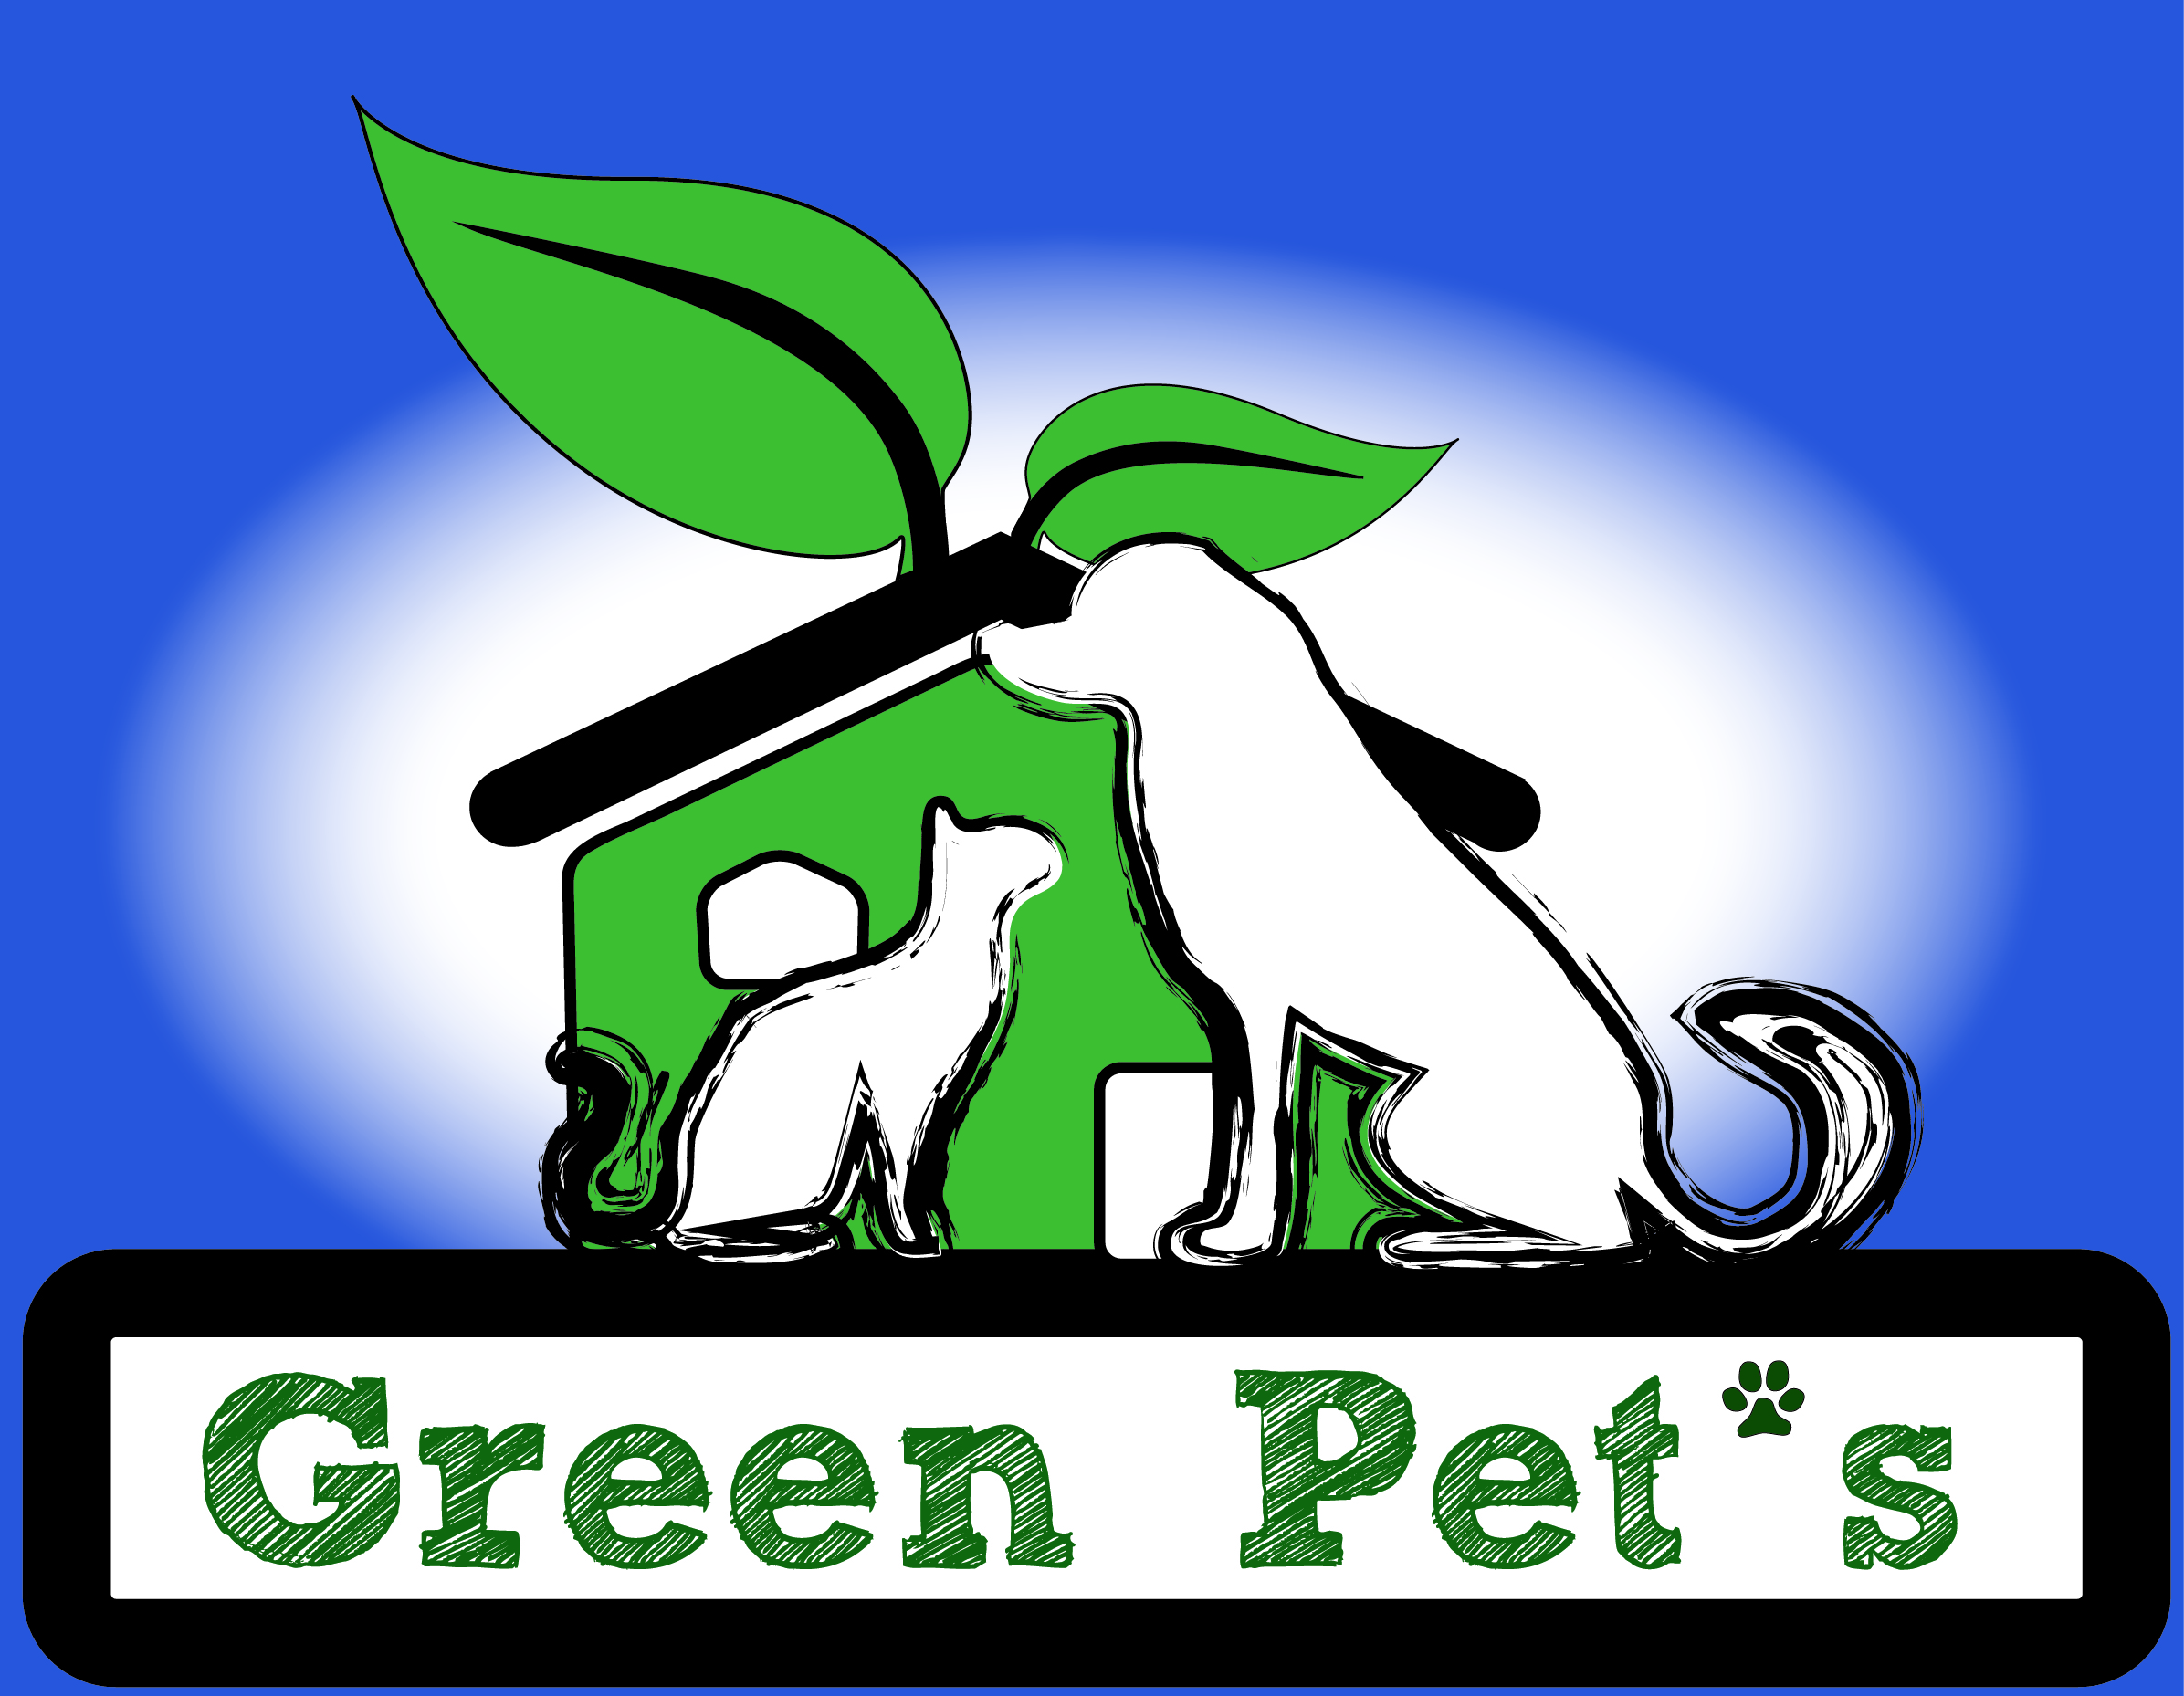 logo urban pet